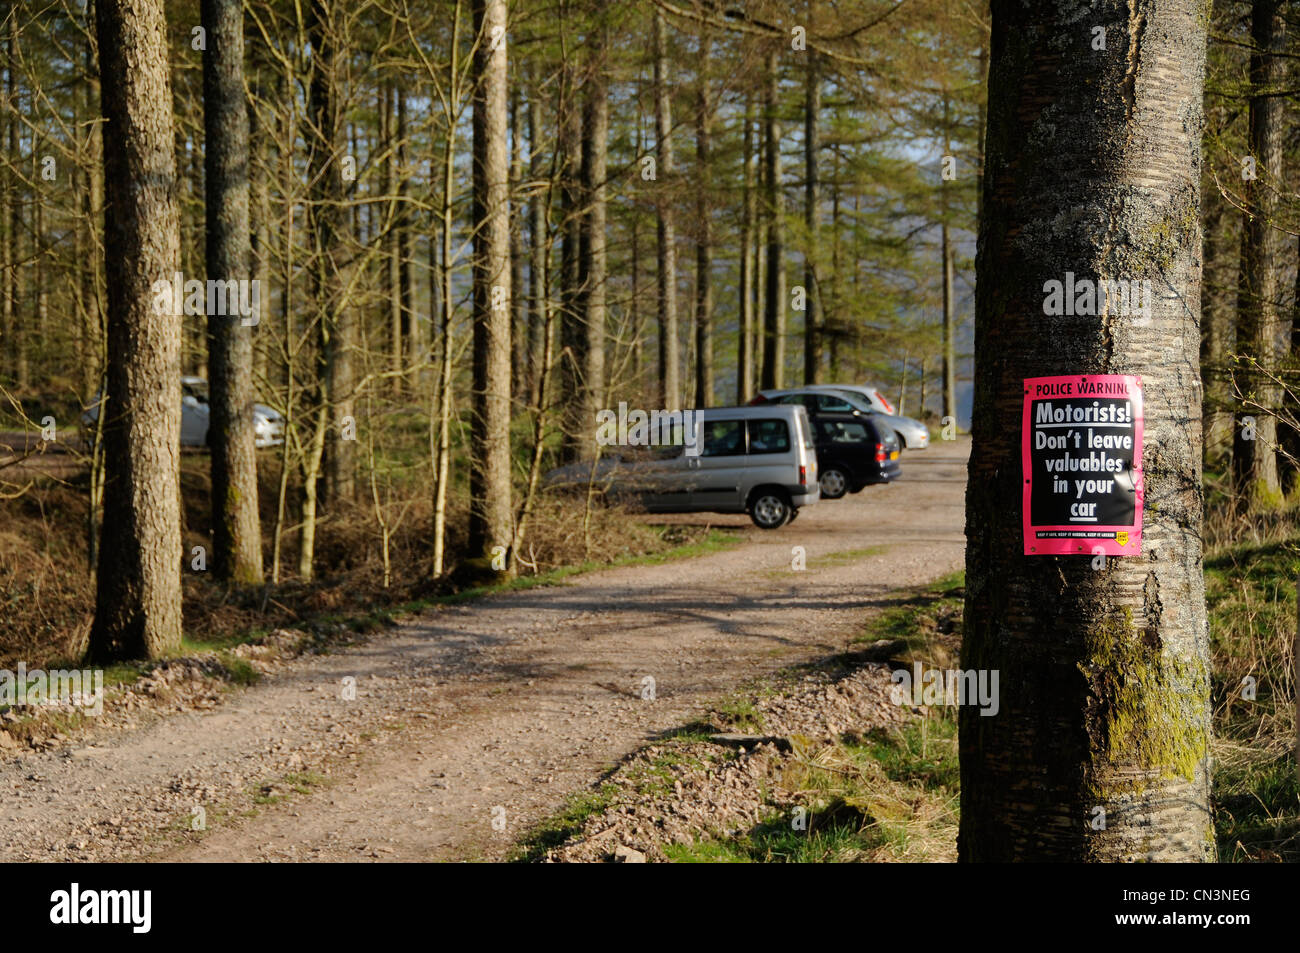 Police warning sign on a tree - Stock Image